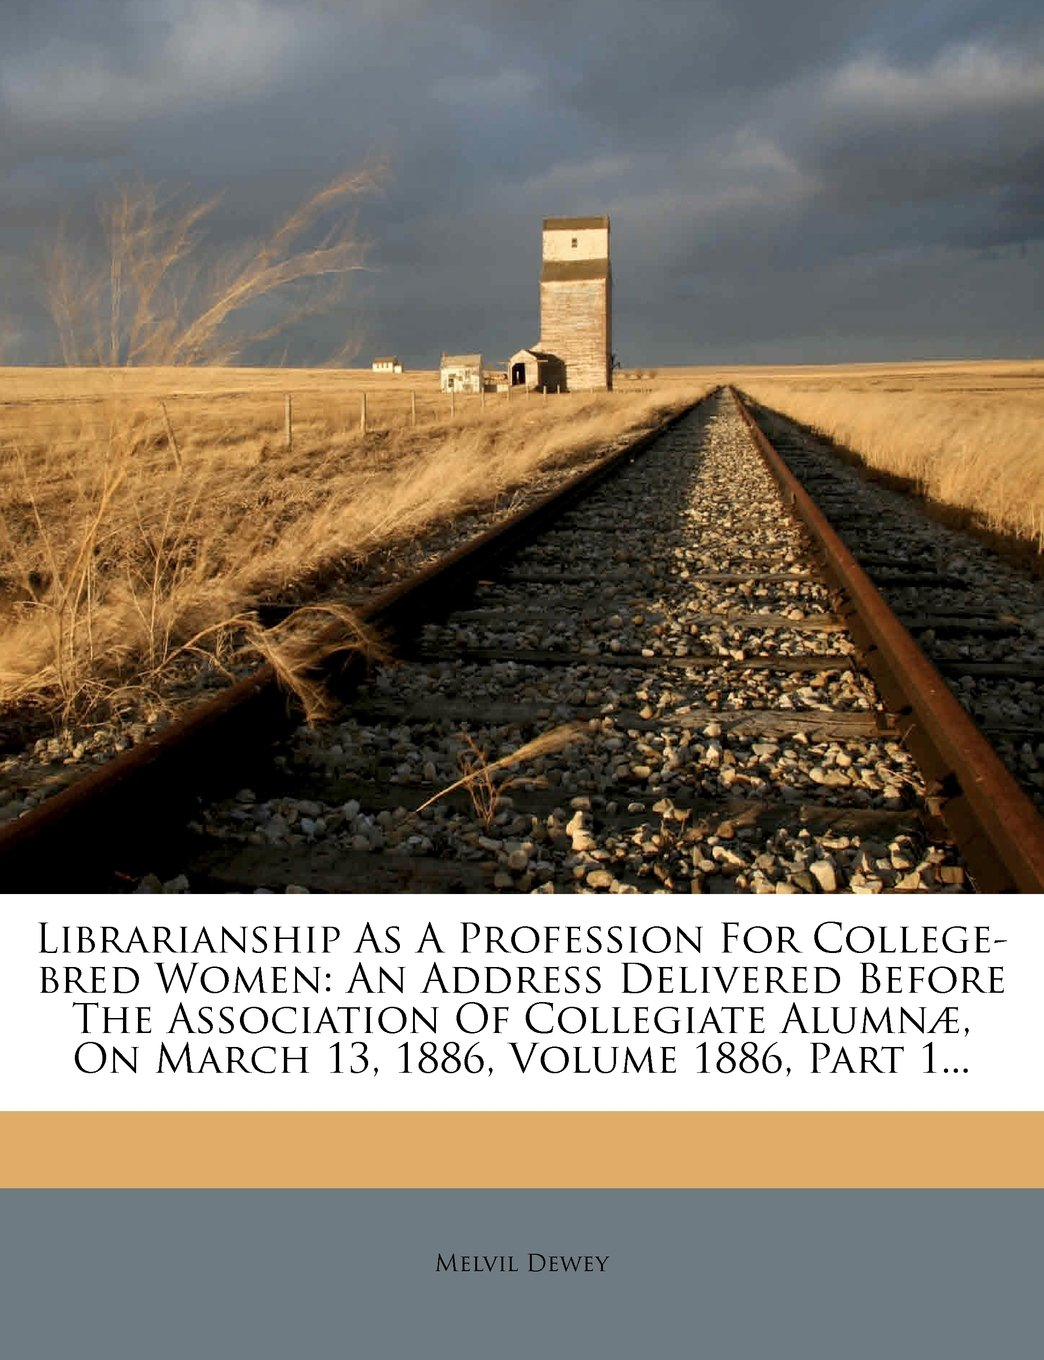 Librarianship As A Profession For College-bred Women: An Address Delivered Before The Association Of Collegiate Alumnæ, On March 13, 1886, Volume 1886, Part 1... pdf epub